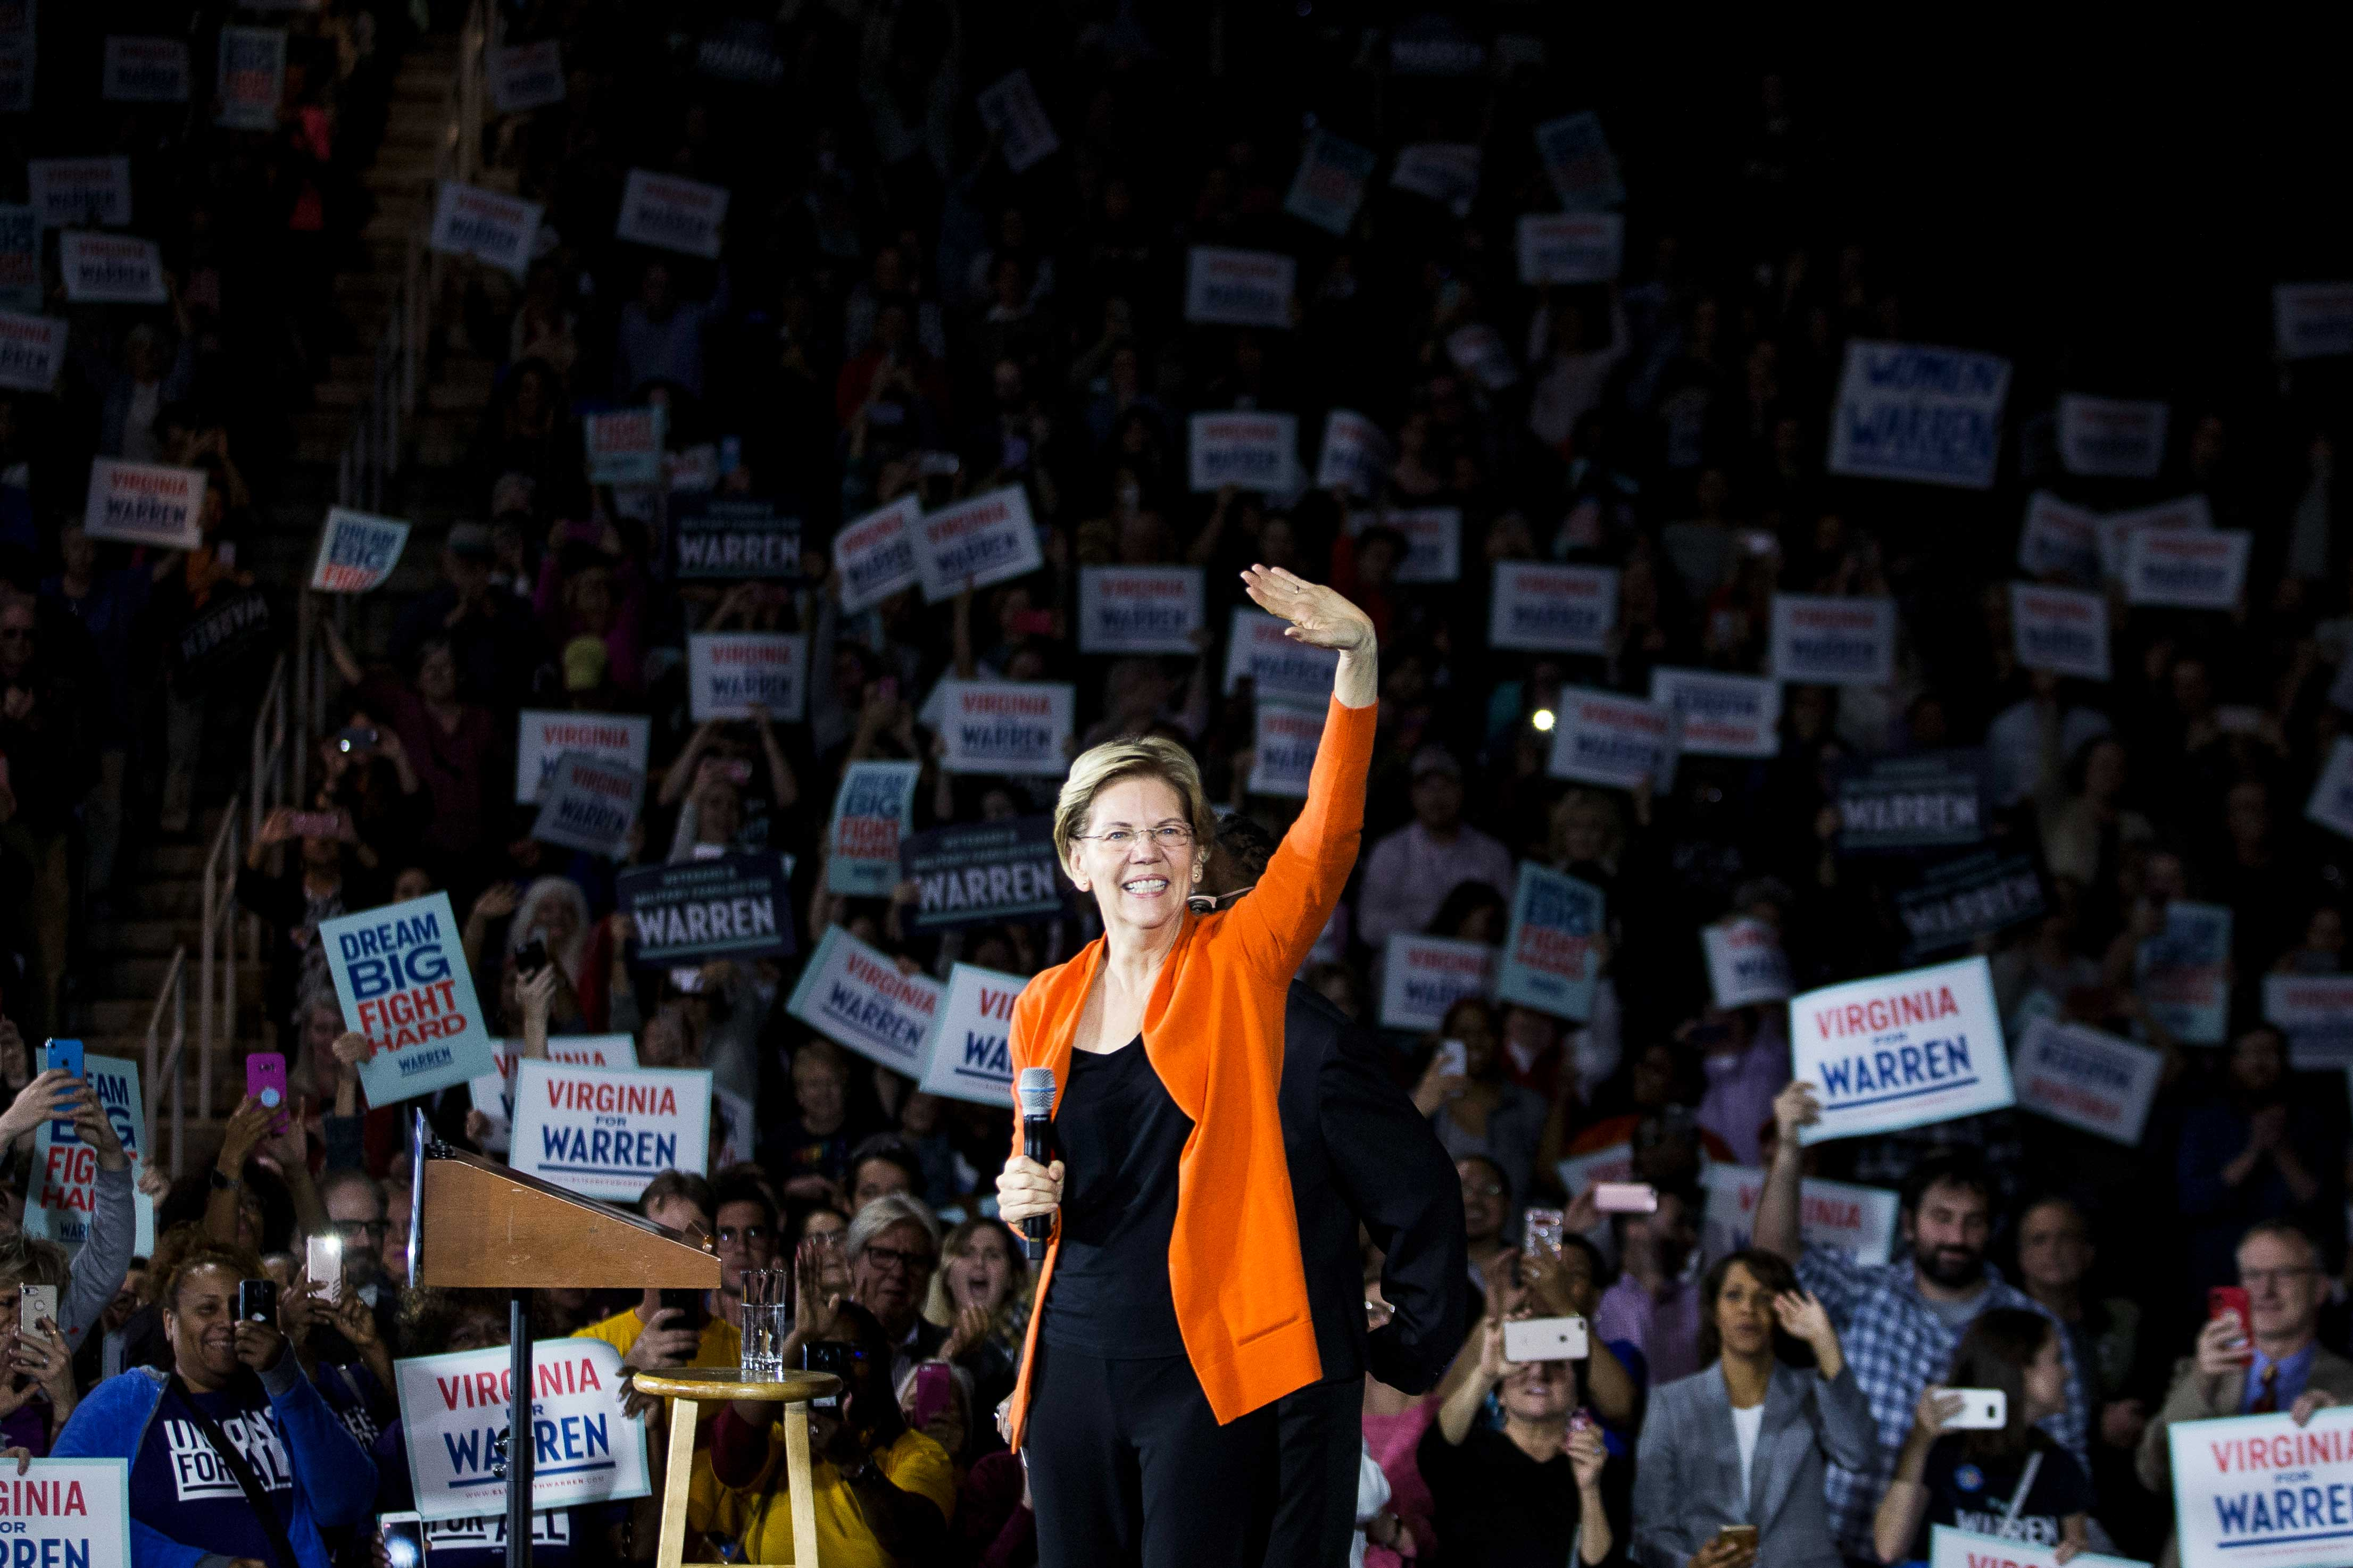 Senator Elizabeth Warren takes the stage during a town hall event in Norfolk, Virginia, on October 18, 2019.